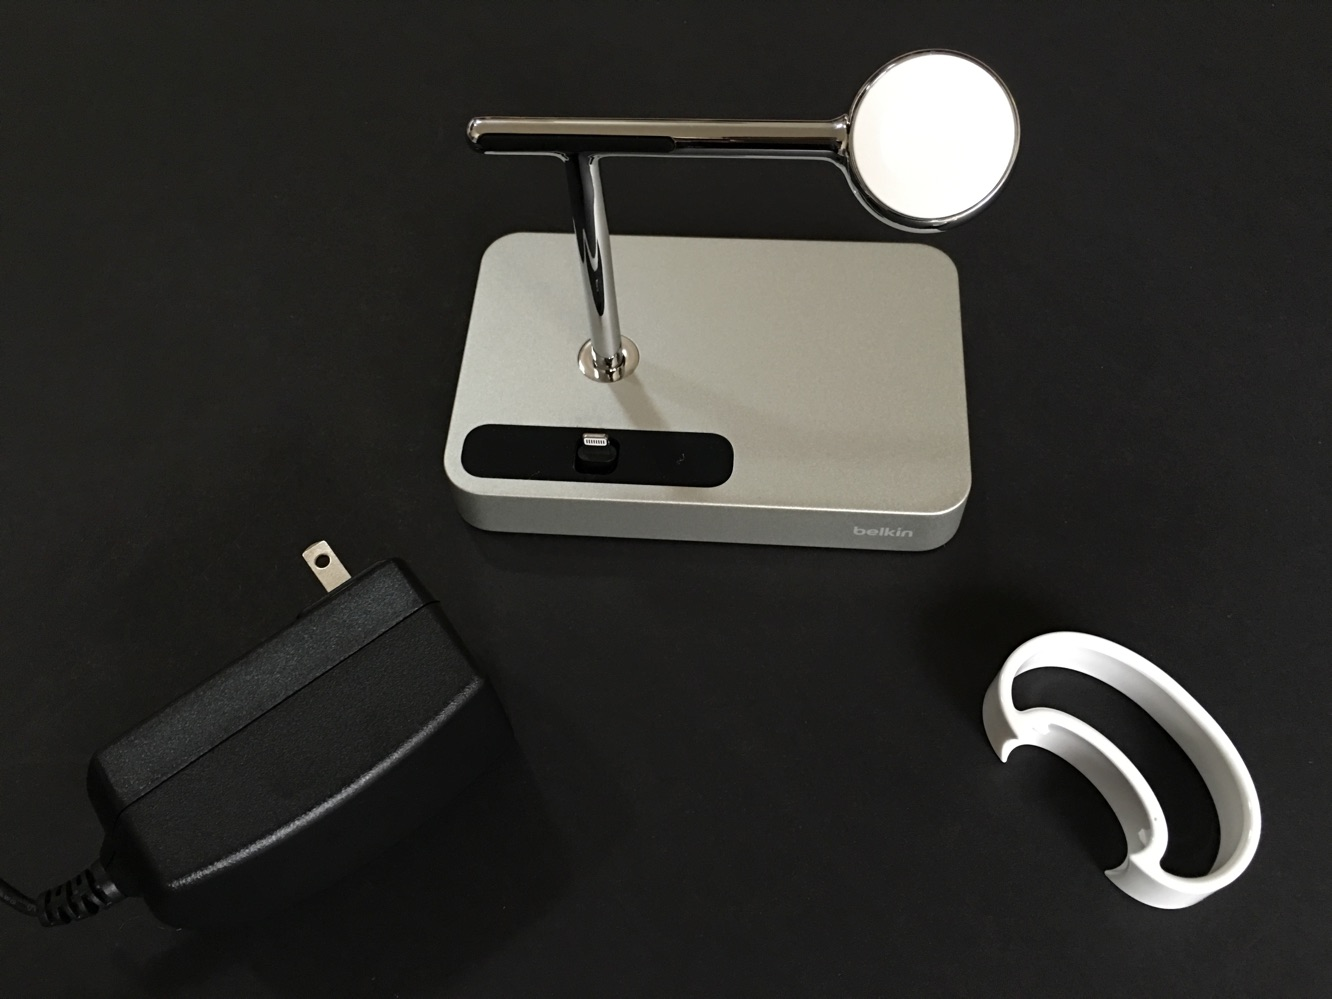 Review: Belkin Charge Dock for Apple Watch + iPhone